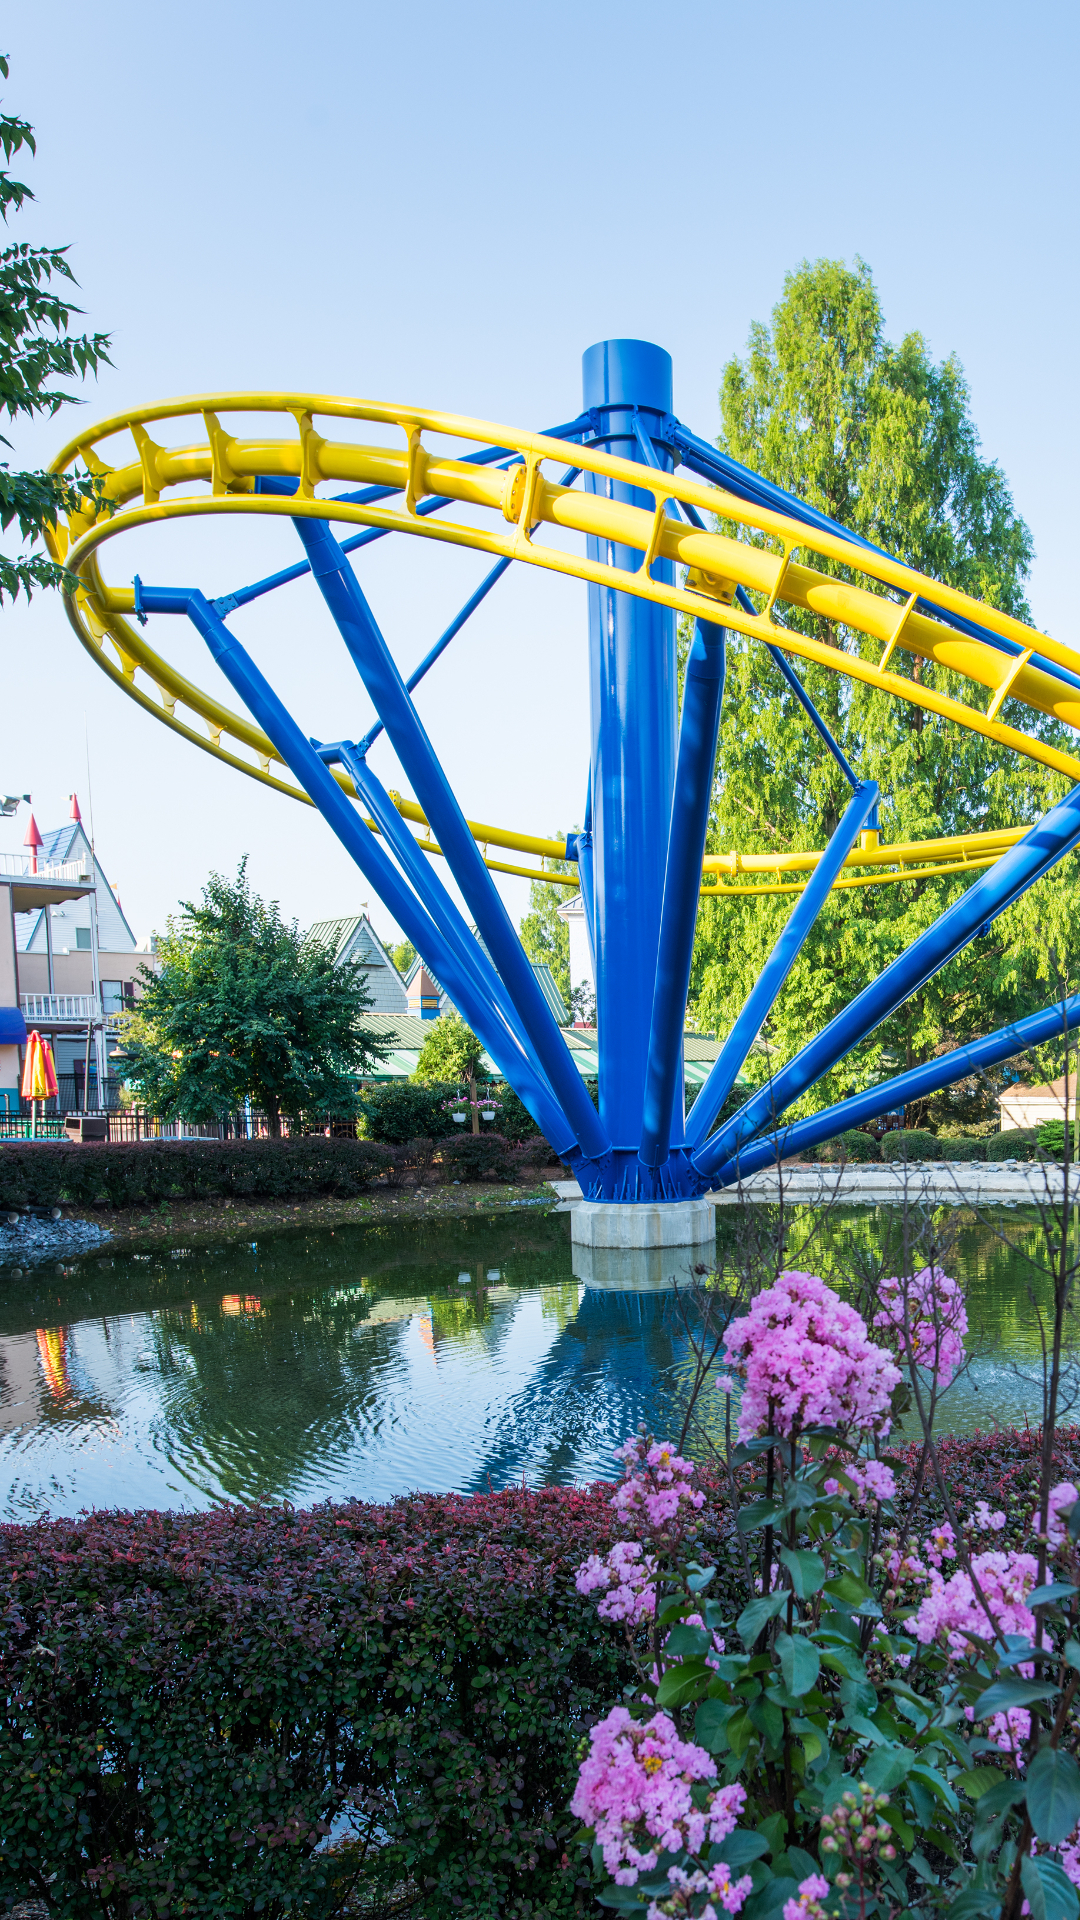 Yellow roller coaster helix above a pond and pink flowers